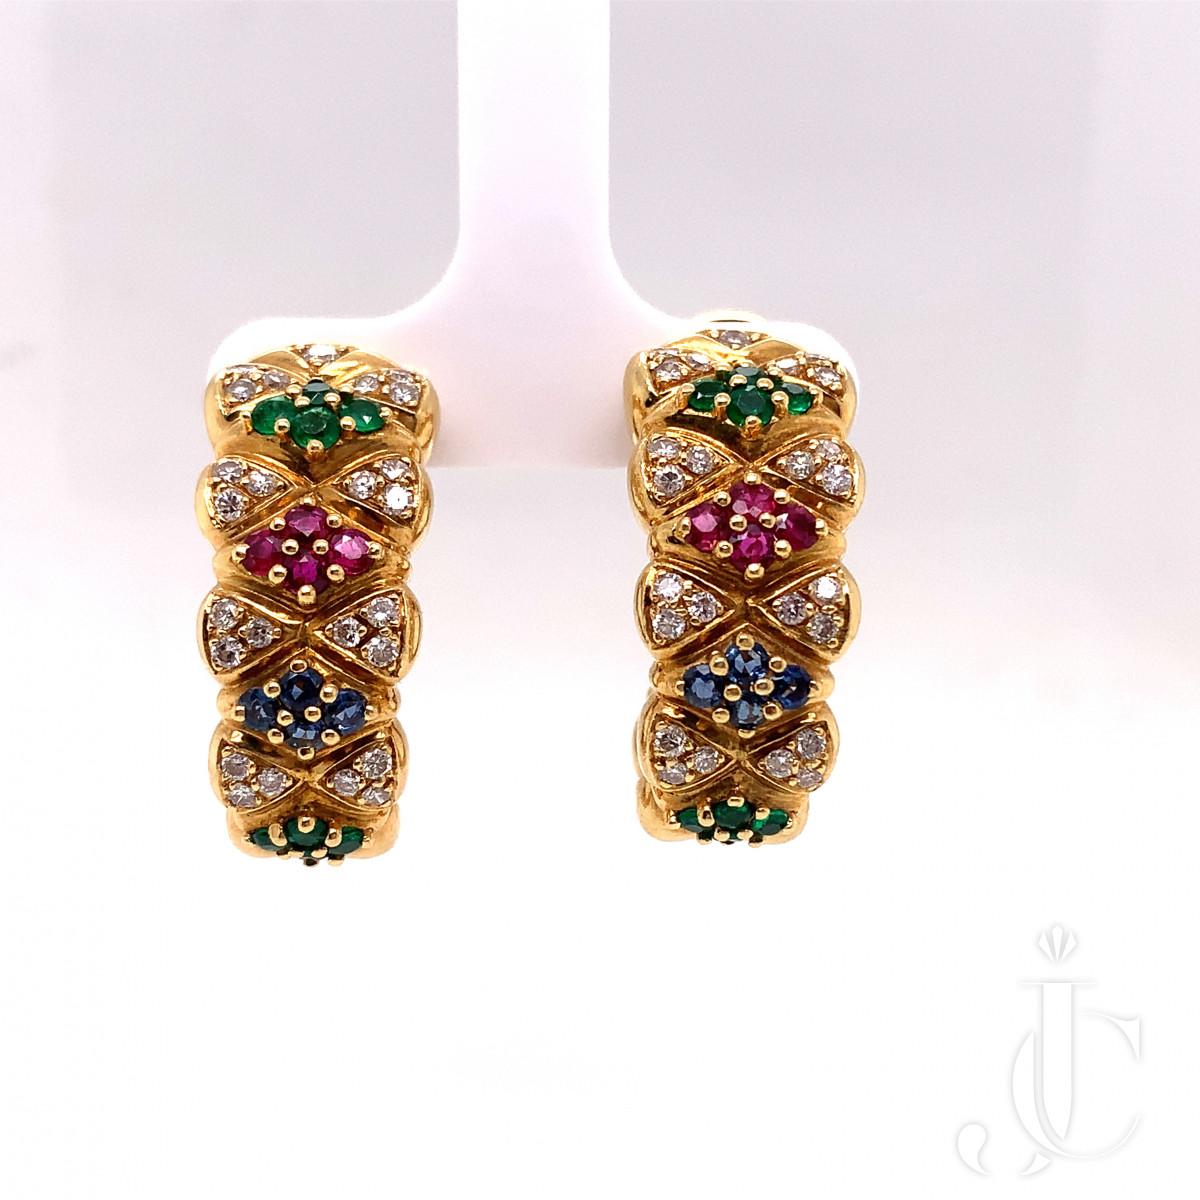 18K Gold pair of earrings with sapphire, ruby, emerald and diamond by Mauboussin